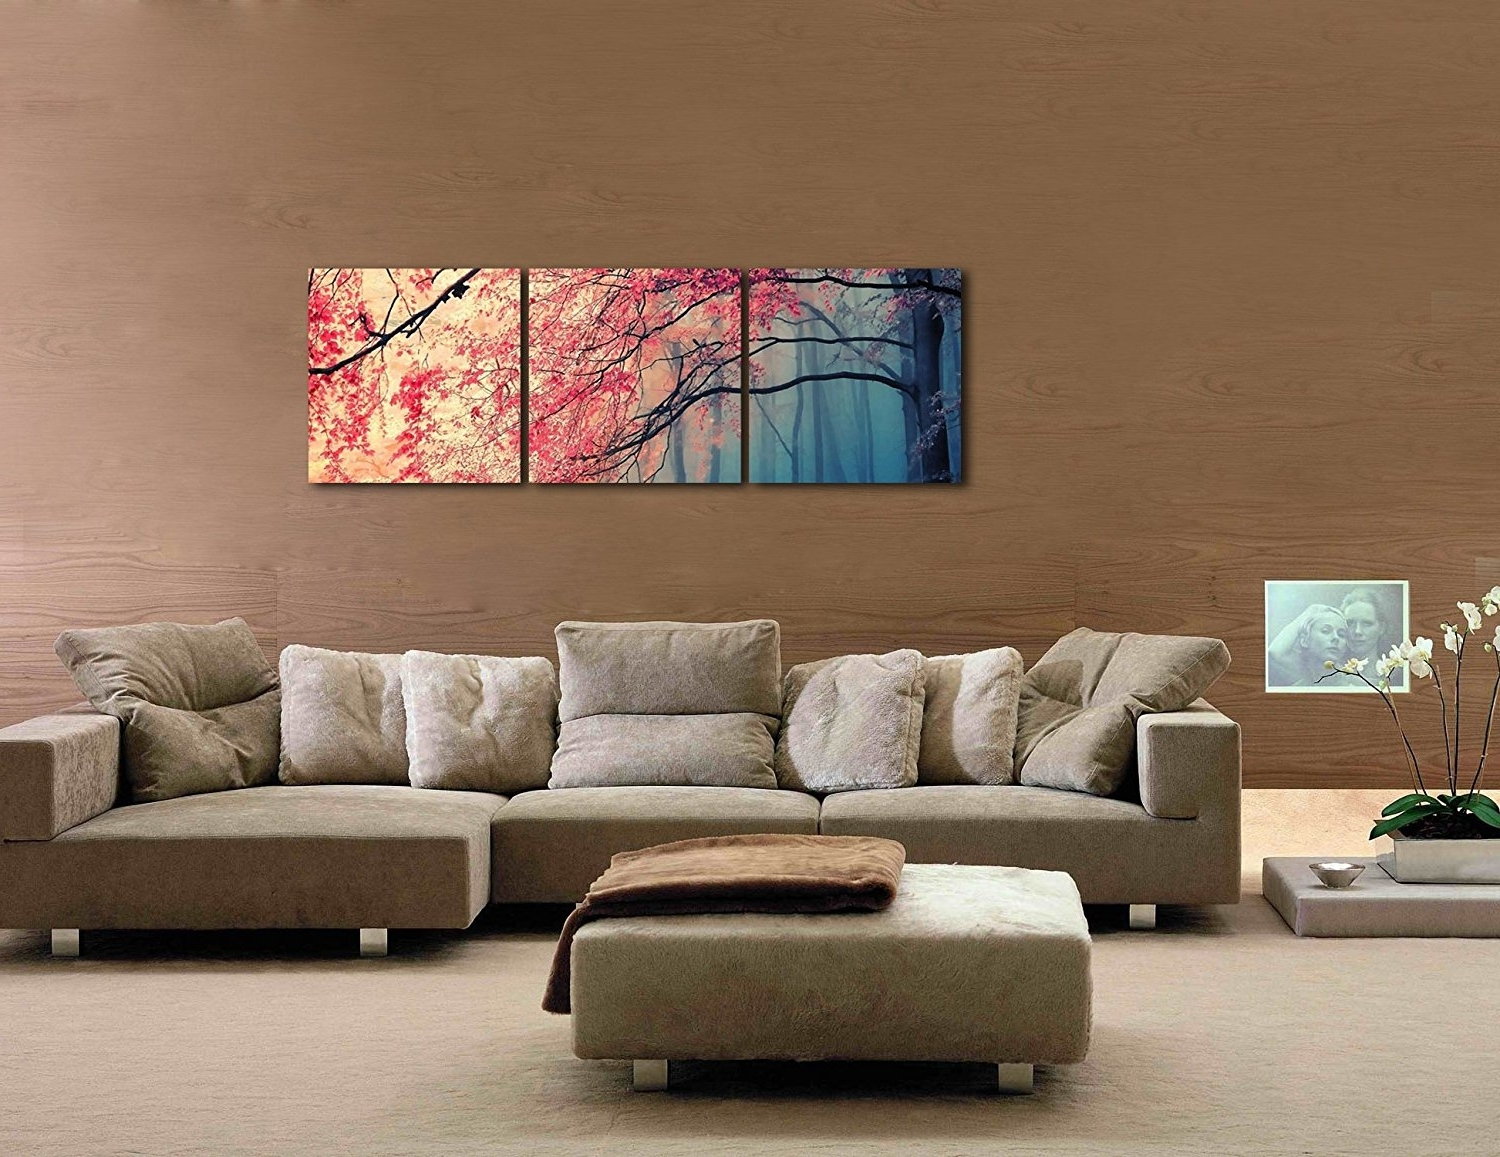 Amazon: Gardenia Art – Red Maples Canvas Prints Wall Art With Regard To Famous Living Room Canvas Wall Art (View 3 of 15)